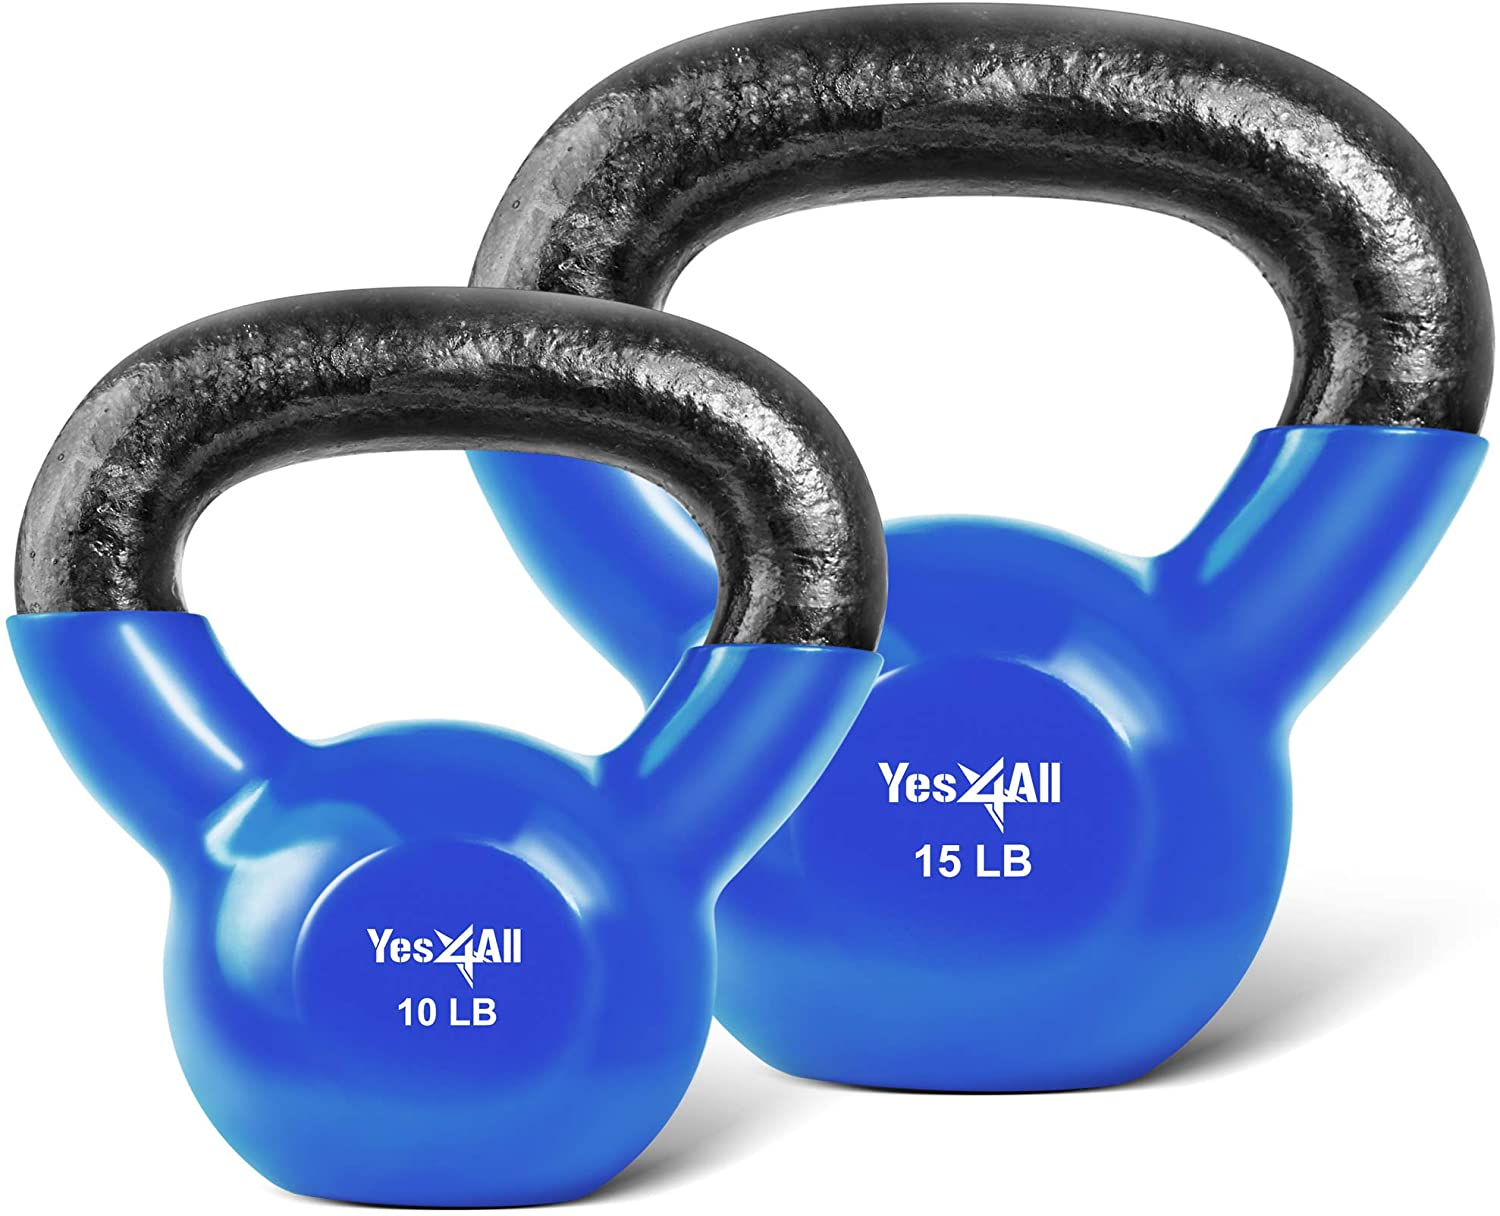 Yes4All Combo Vinyl Coated Kettlebell Weight Sets – Great for Full Body Workout and Strength Training – Vinyl Kettlebells 10 15 lbs, Blue, Model: K9OF